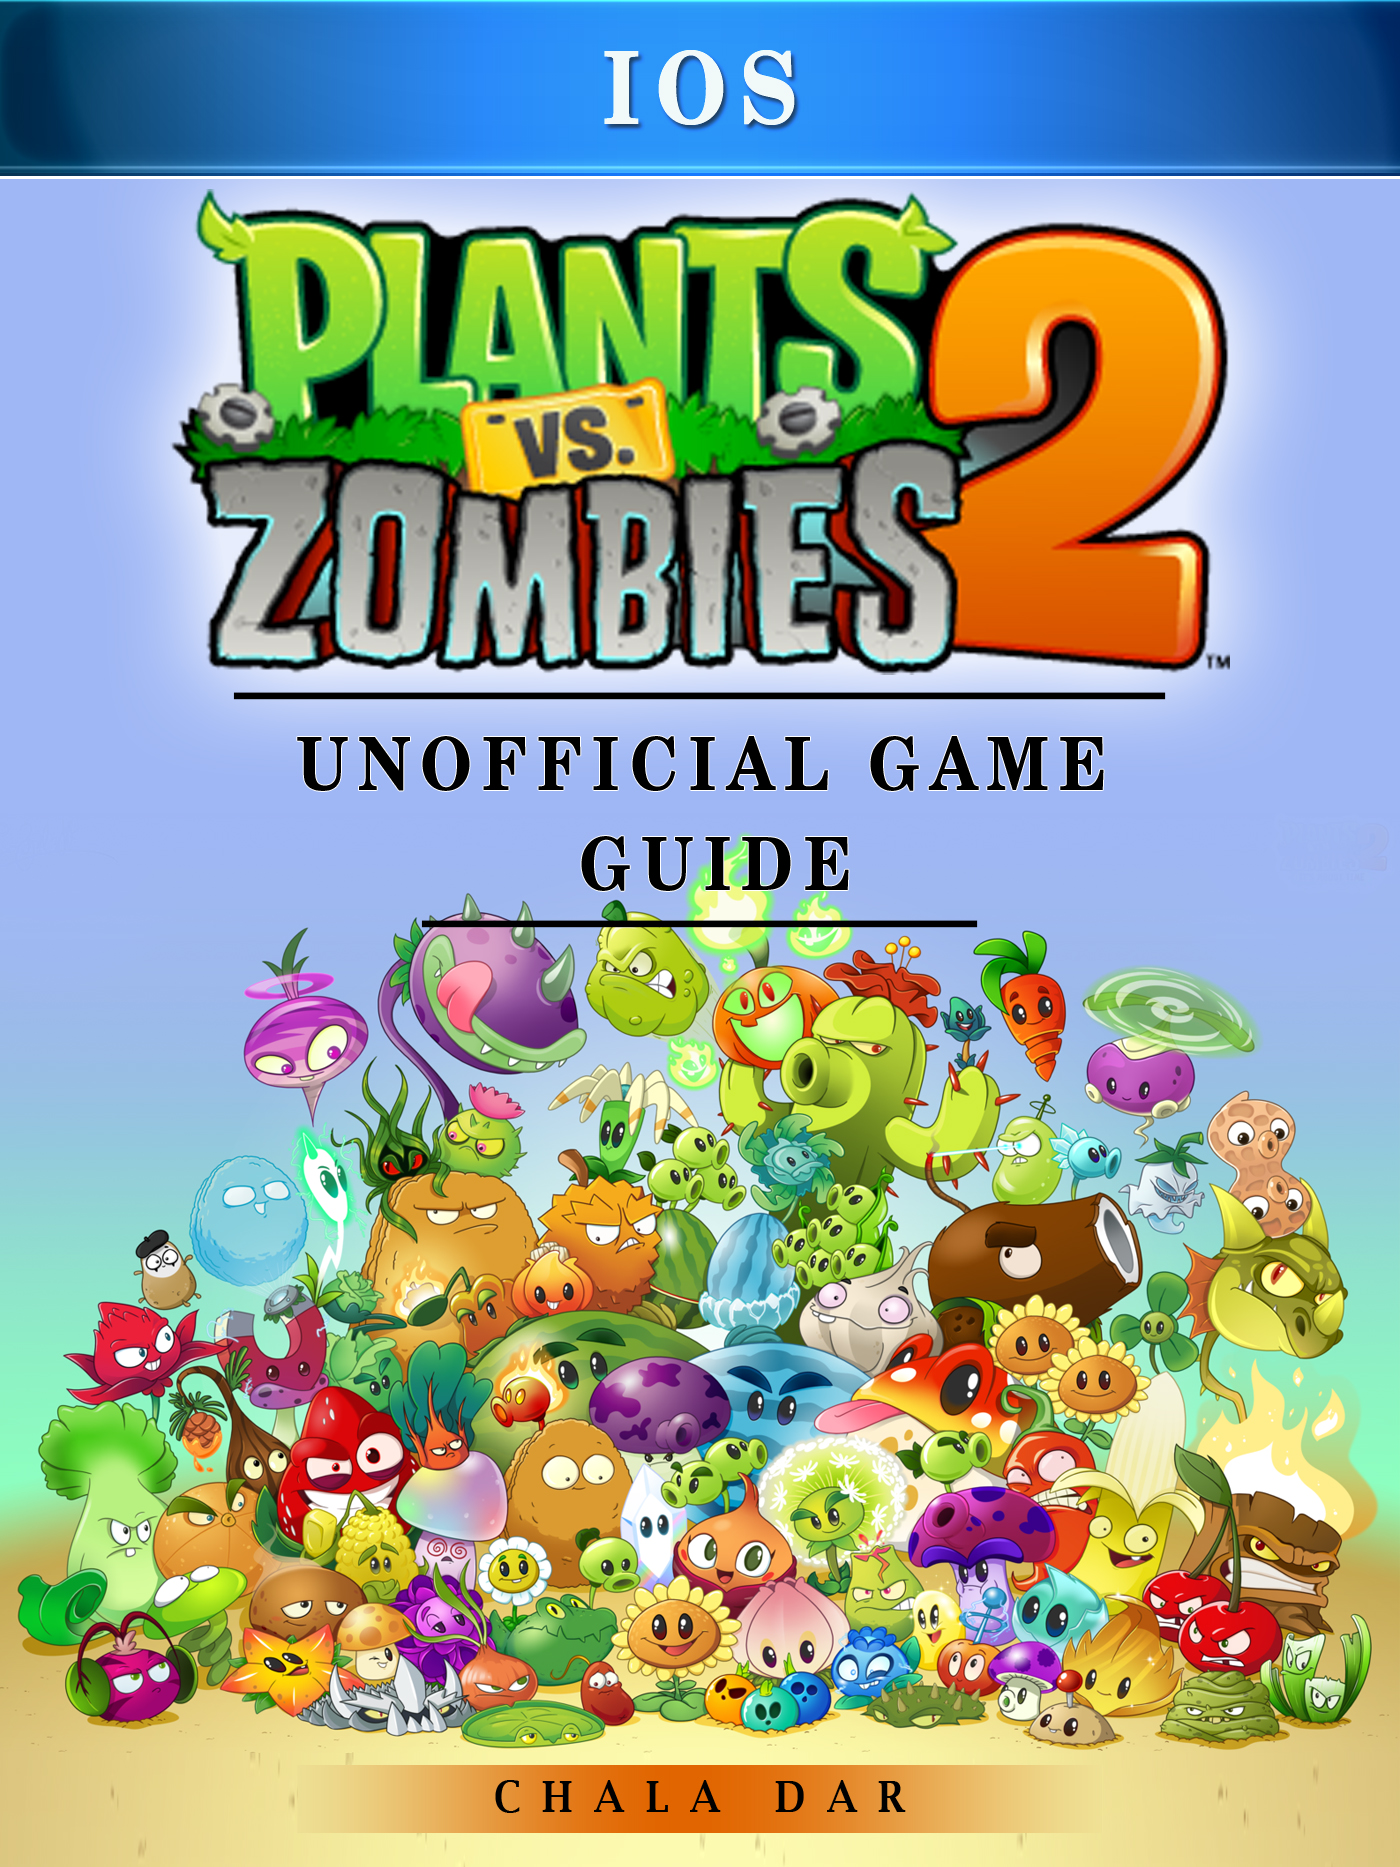 Plants Vs Zombies 2 iOS Game Guide Unofficial By Chala Dar